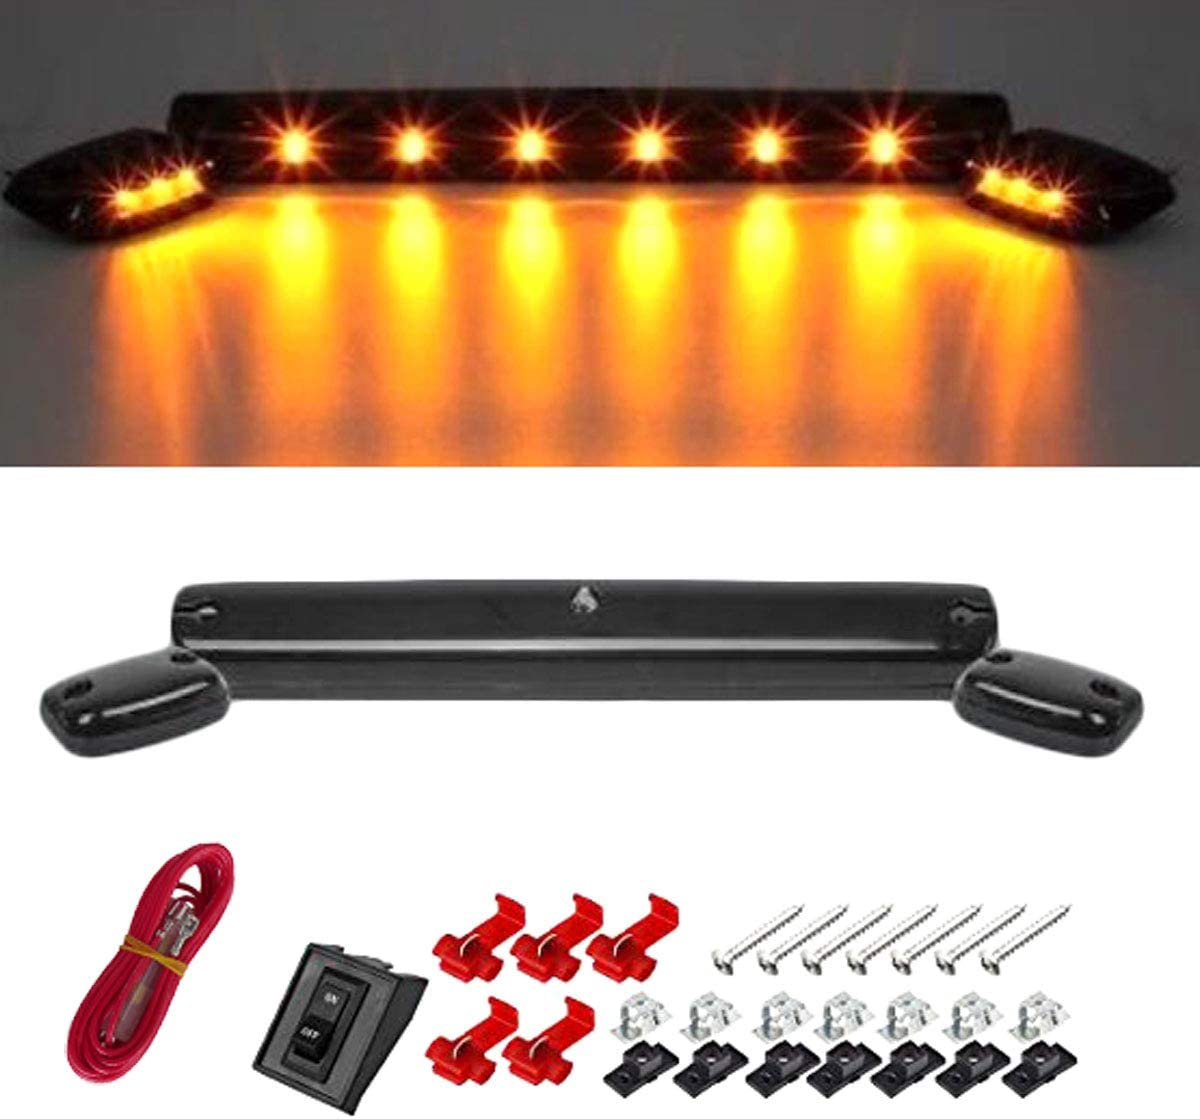 ON//OFF Switch and All Accessories w//Wire Harness /& Switch Smoked Lens LED Cab Roof Running Lamps for Chevrolet Silverado or GMC Sierra 2500 3500 HD 2007-2020 3-Piece Top Marker Running Light Set